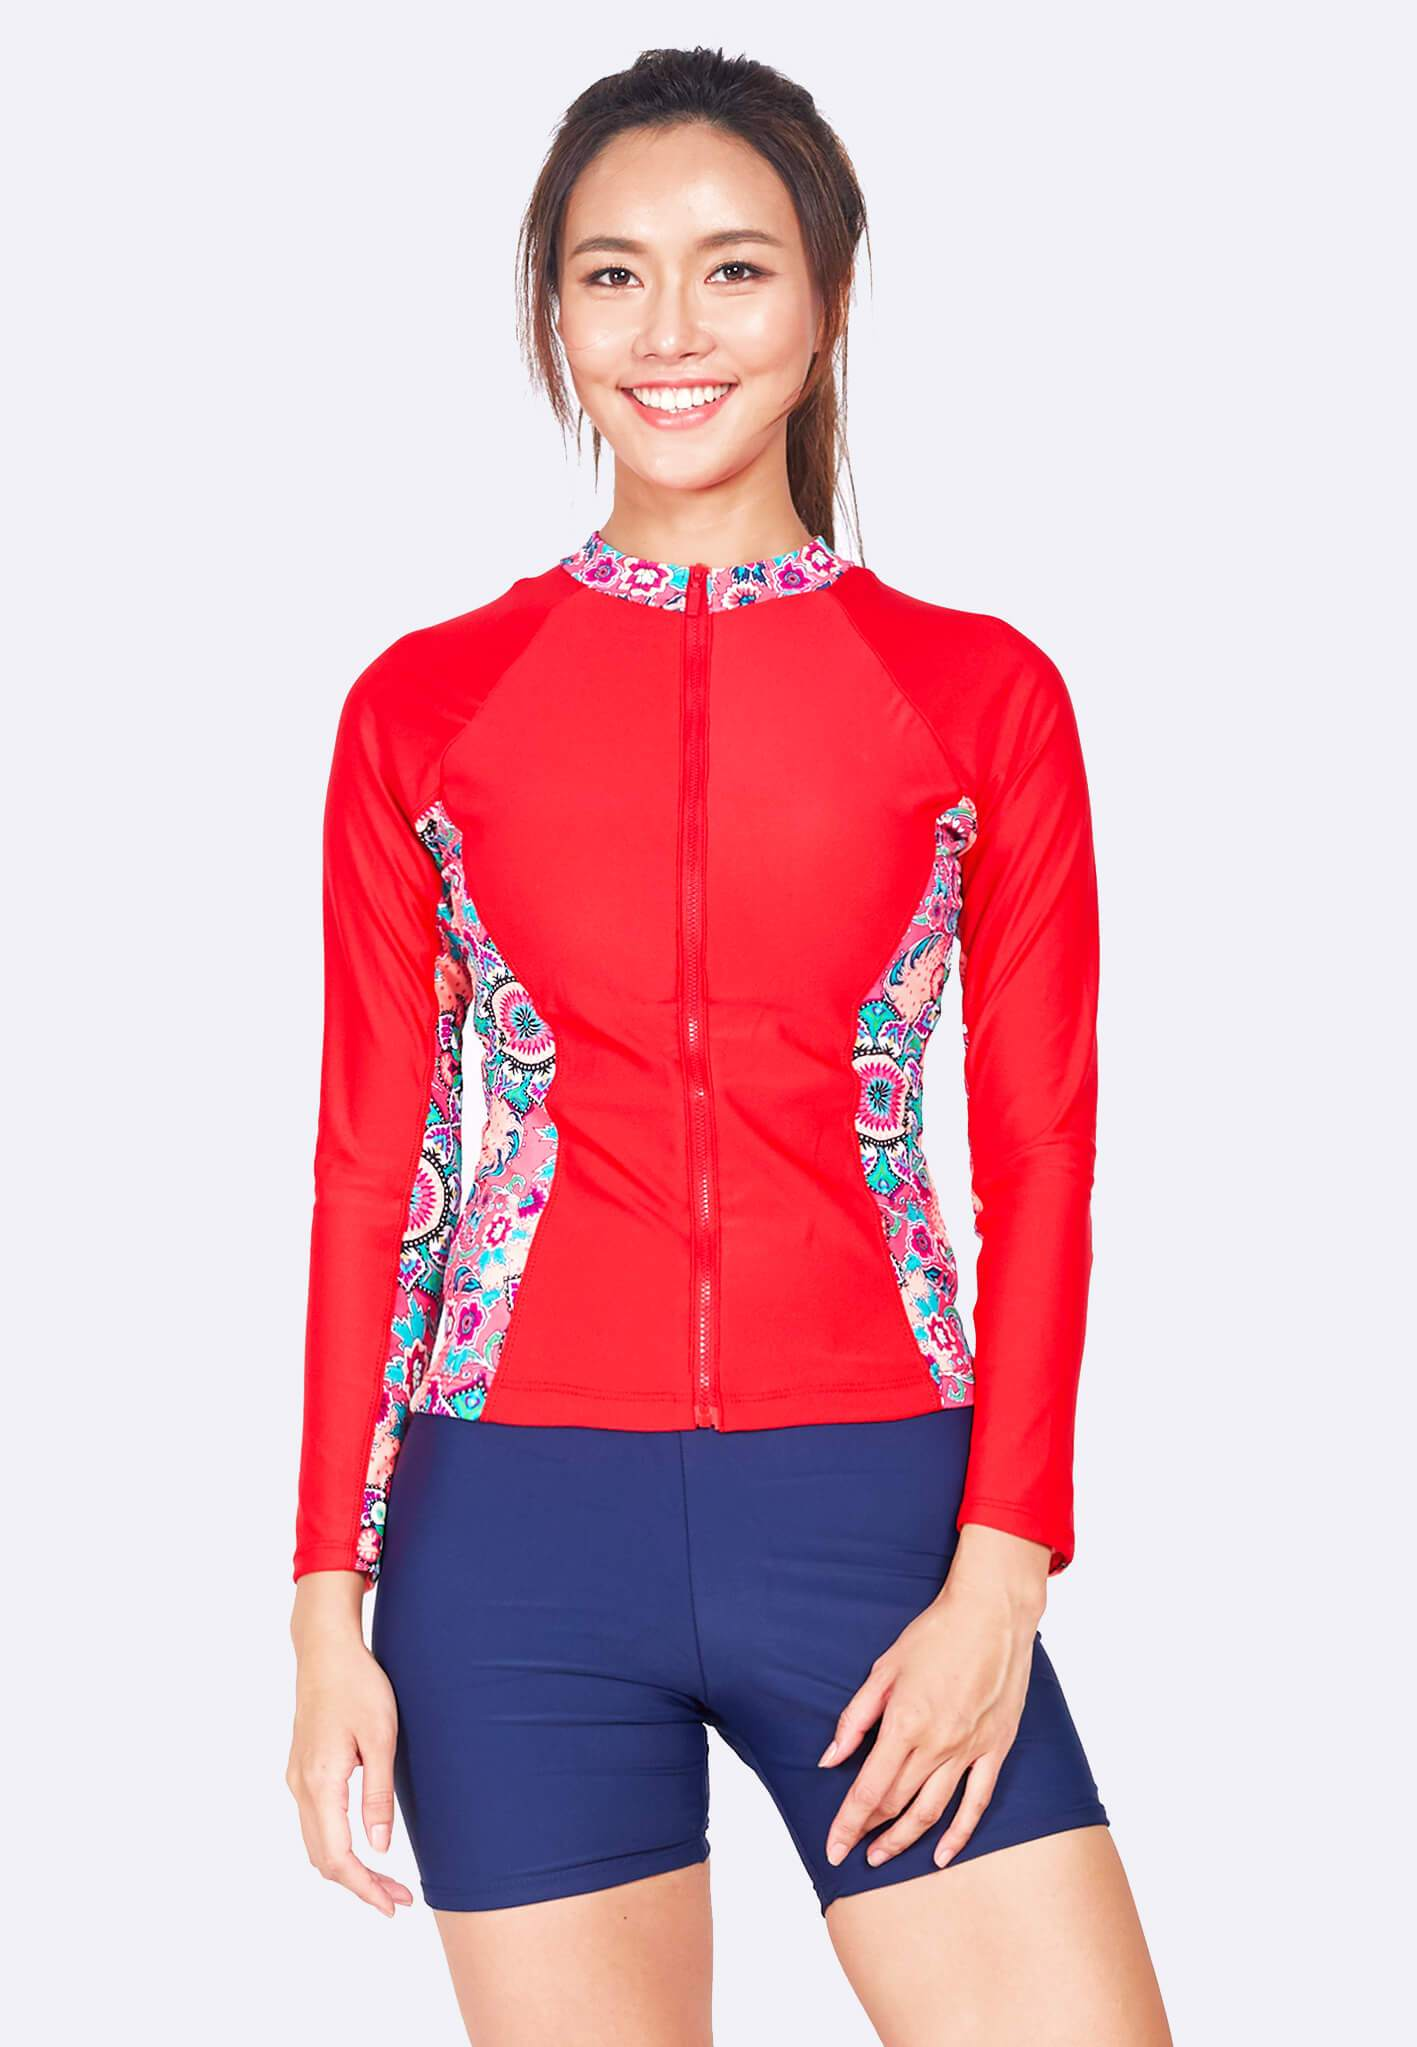 Colourblock Zip Front Rashguard in Red/ Mandala Print (S - 3XL) - FUNFIT